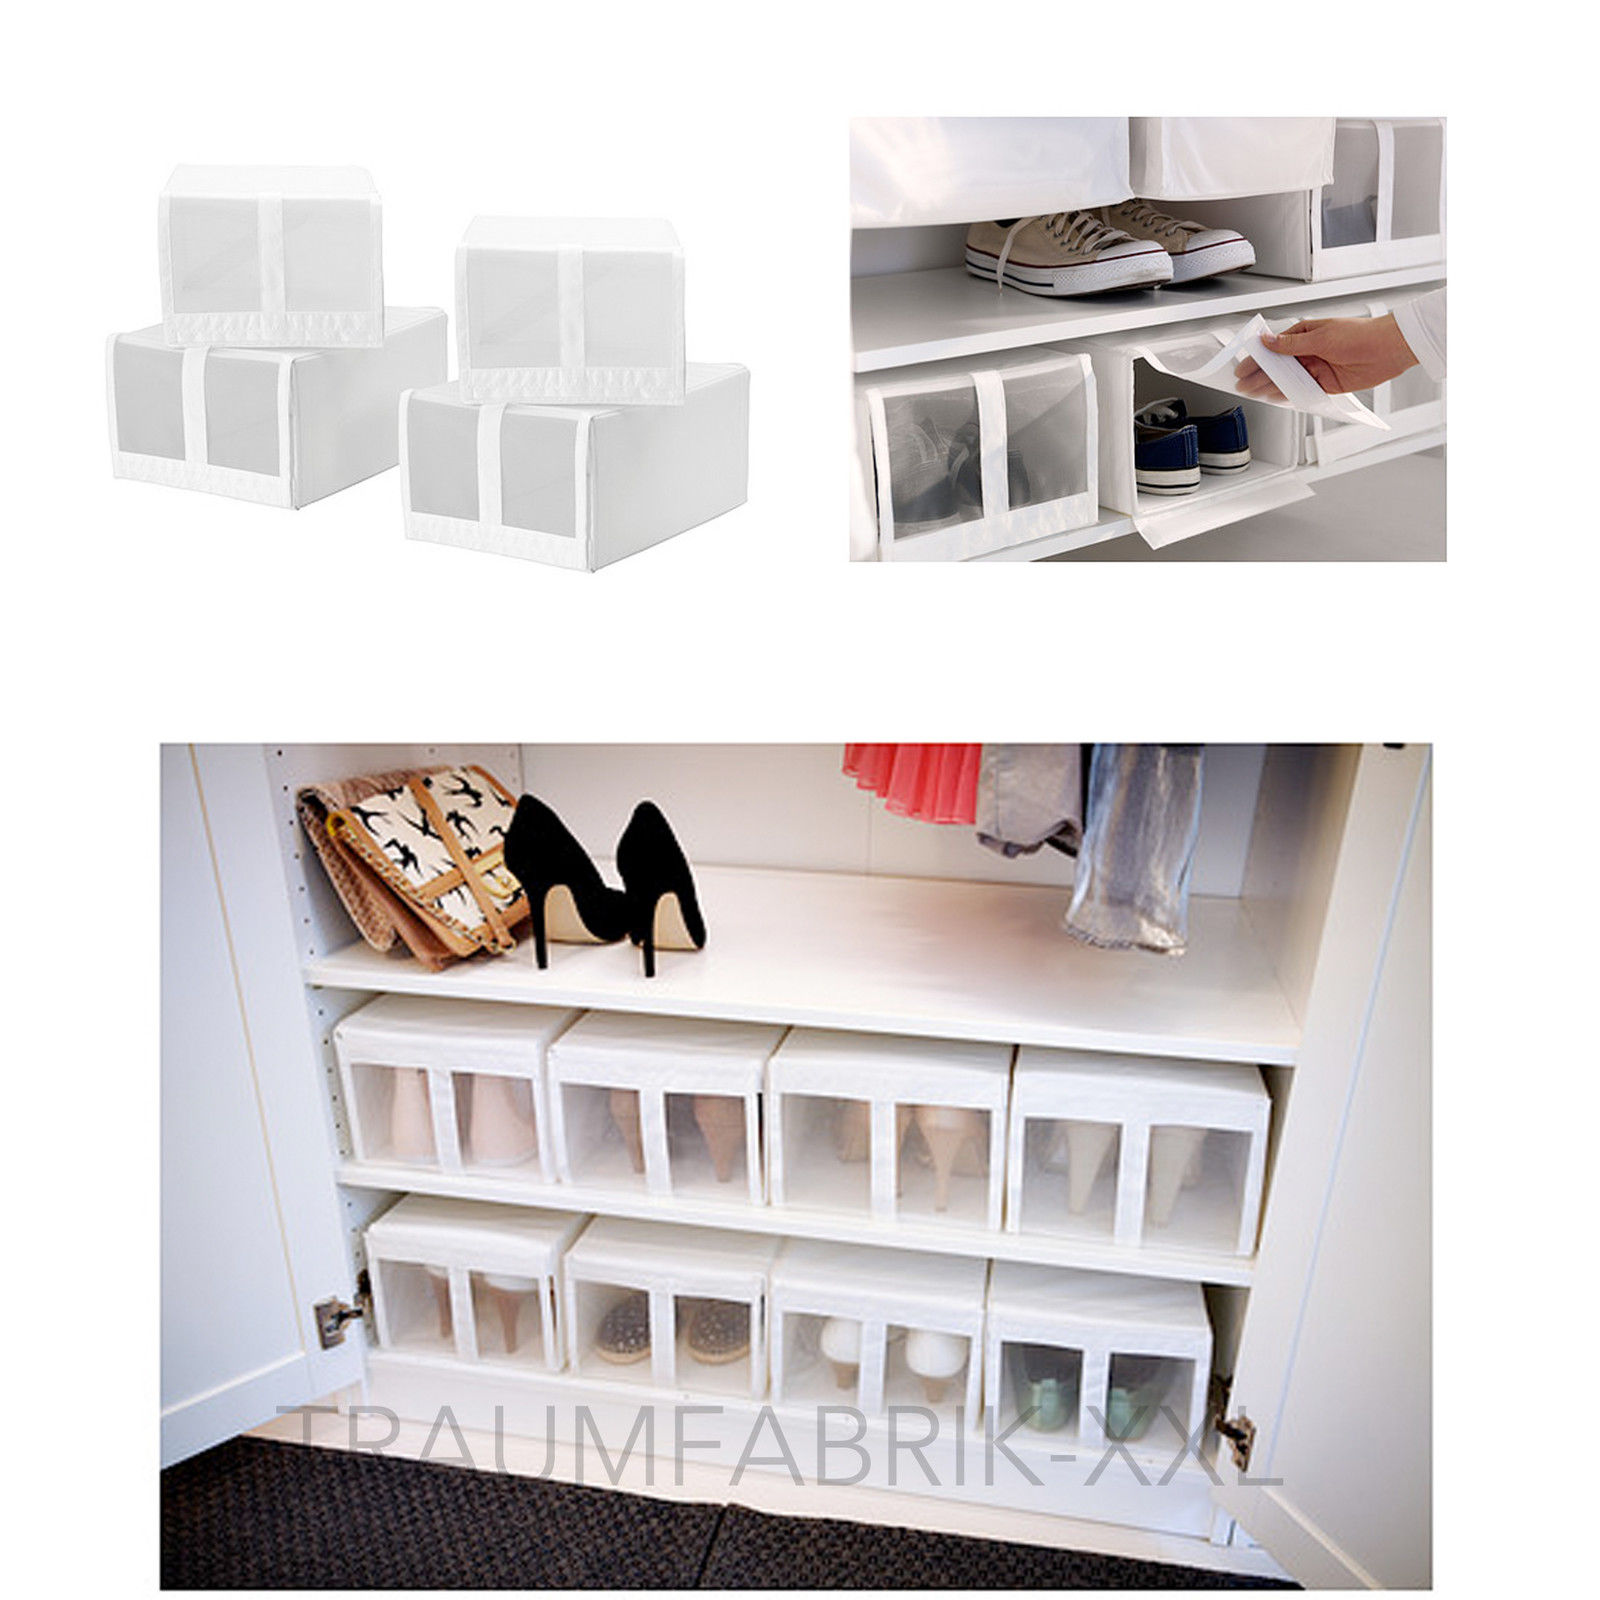 4x aufbewahrungsboxen schuhe boxen box regalbox schuhbox. Black Bedroom Furniture Sets. Home Design Ideas